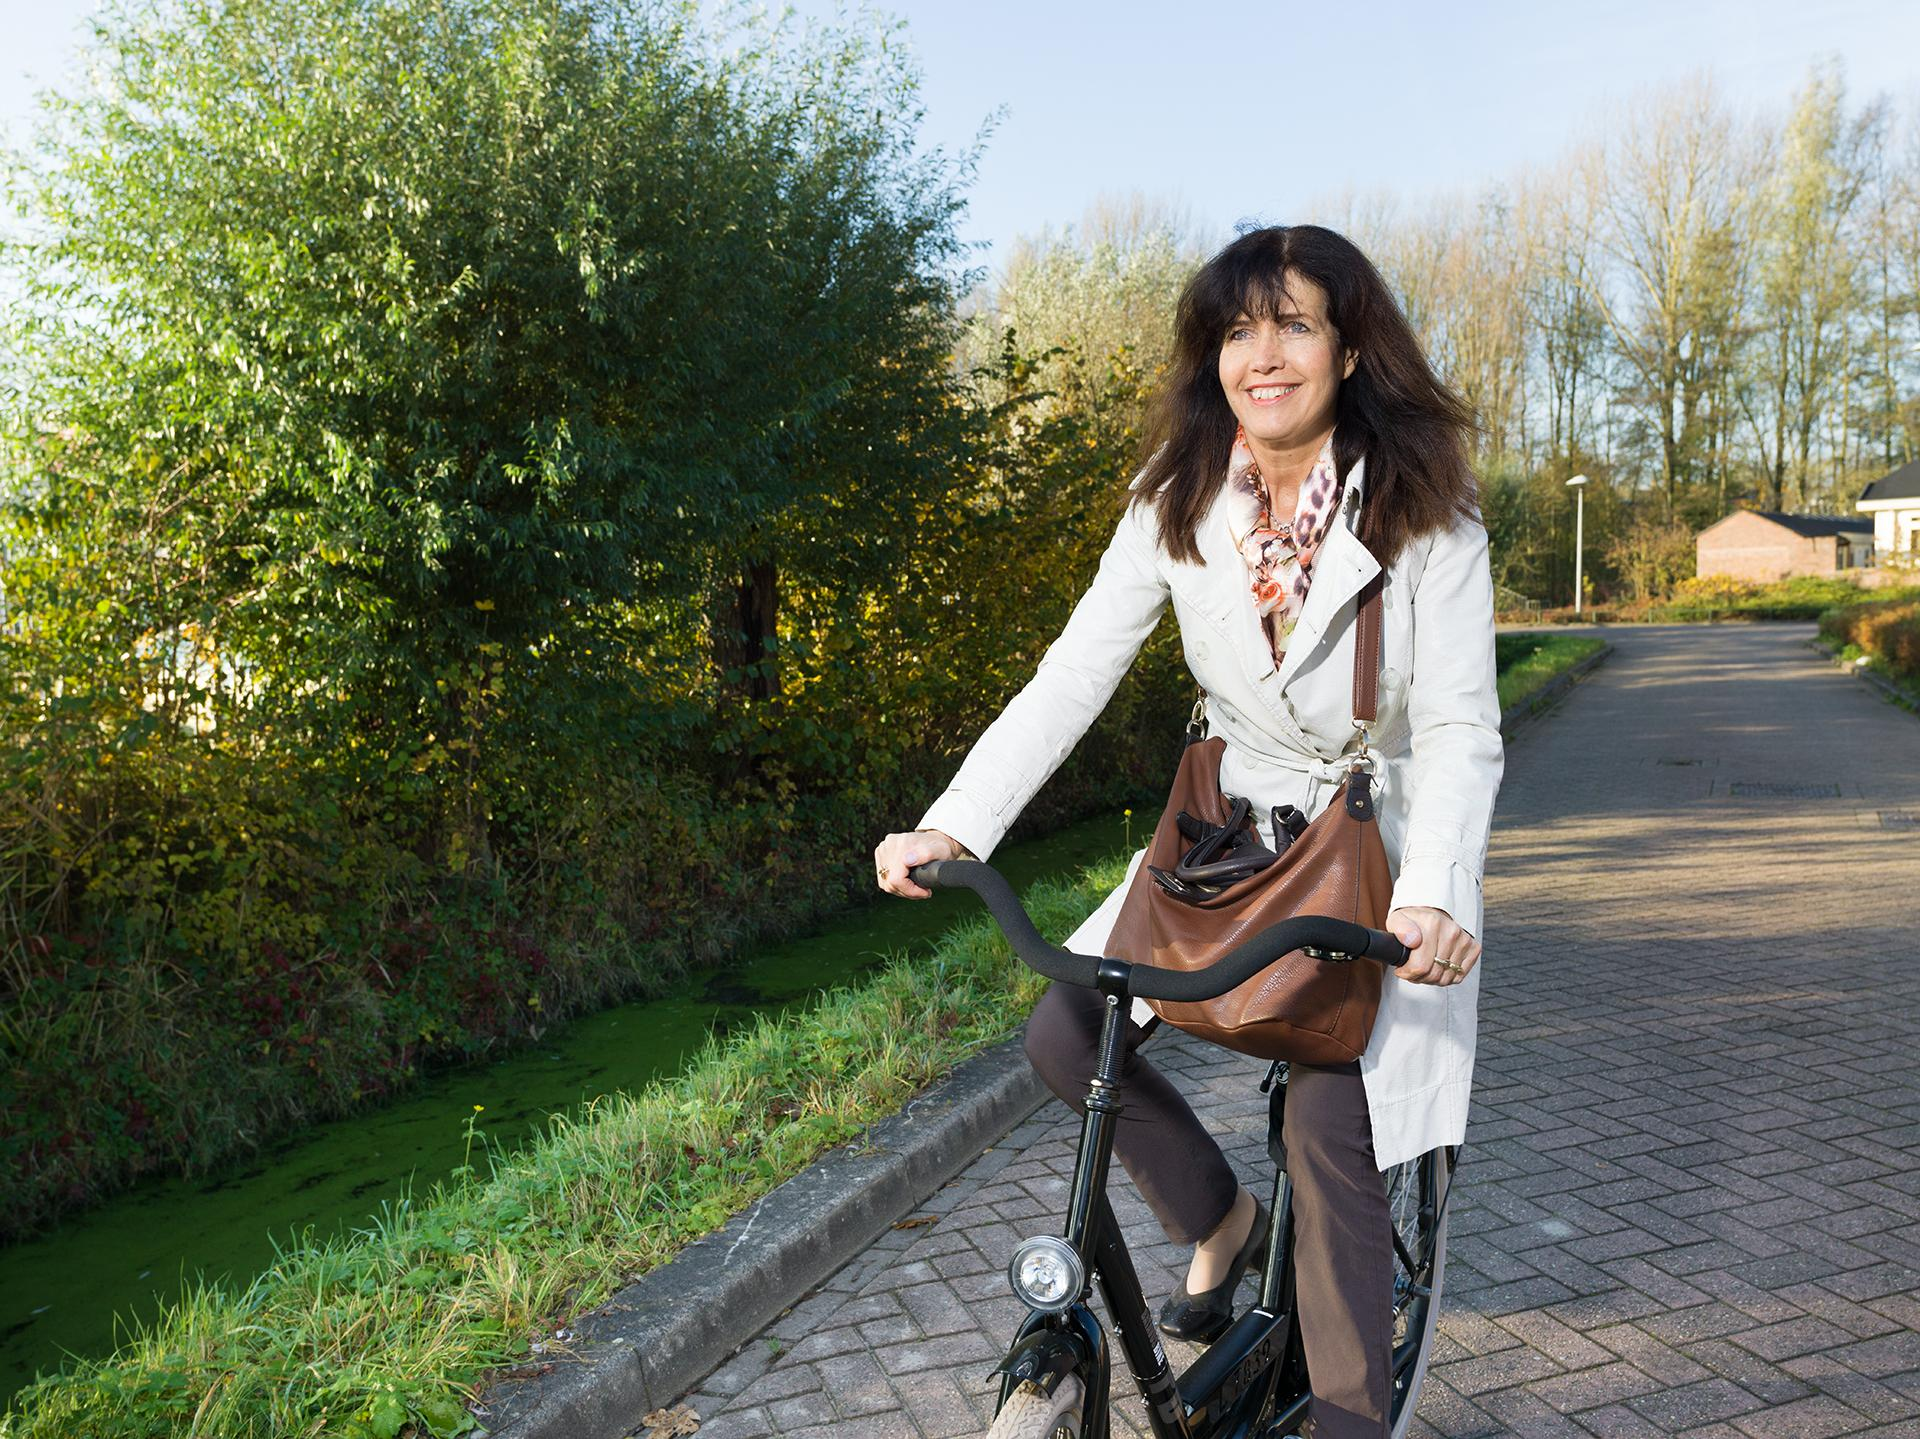 woman_on_bike